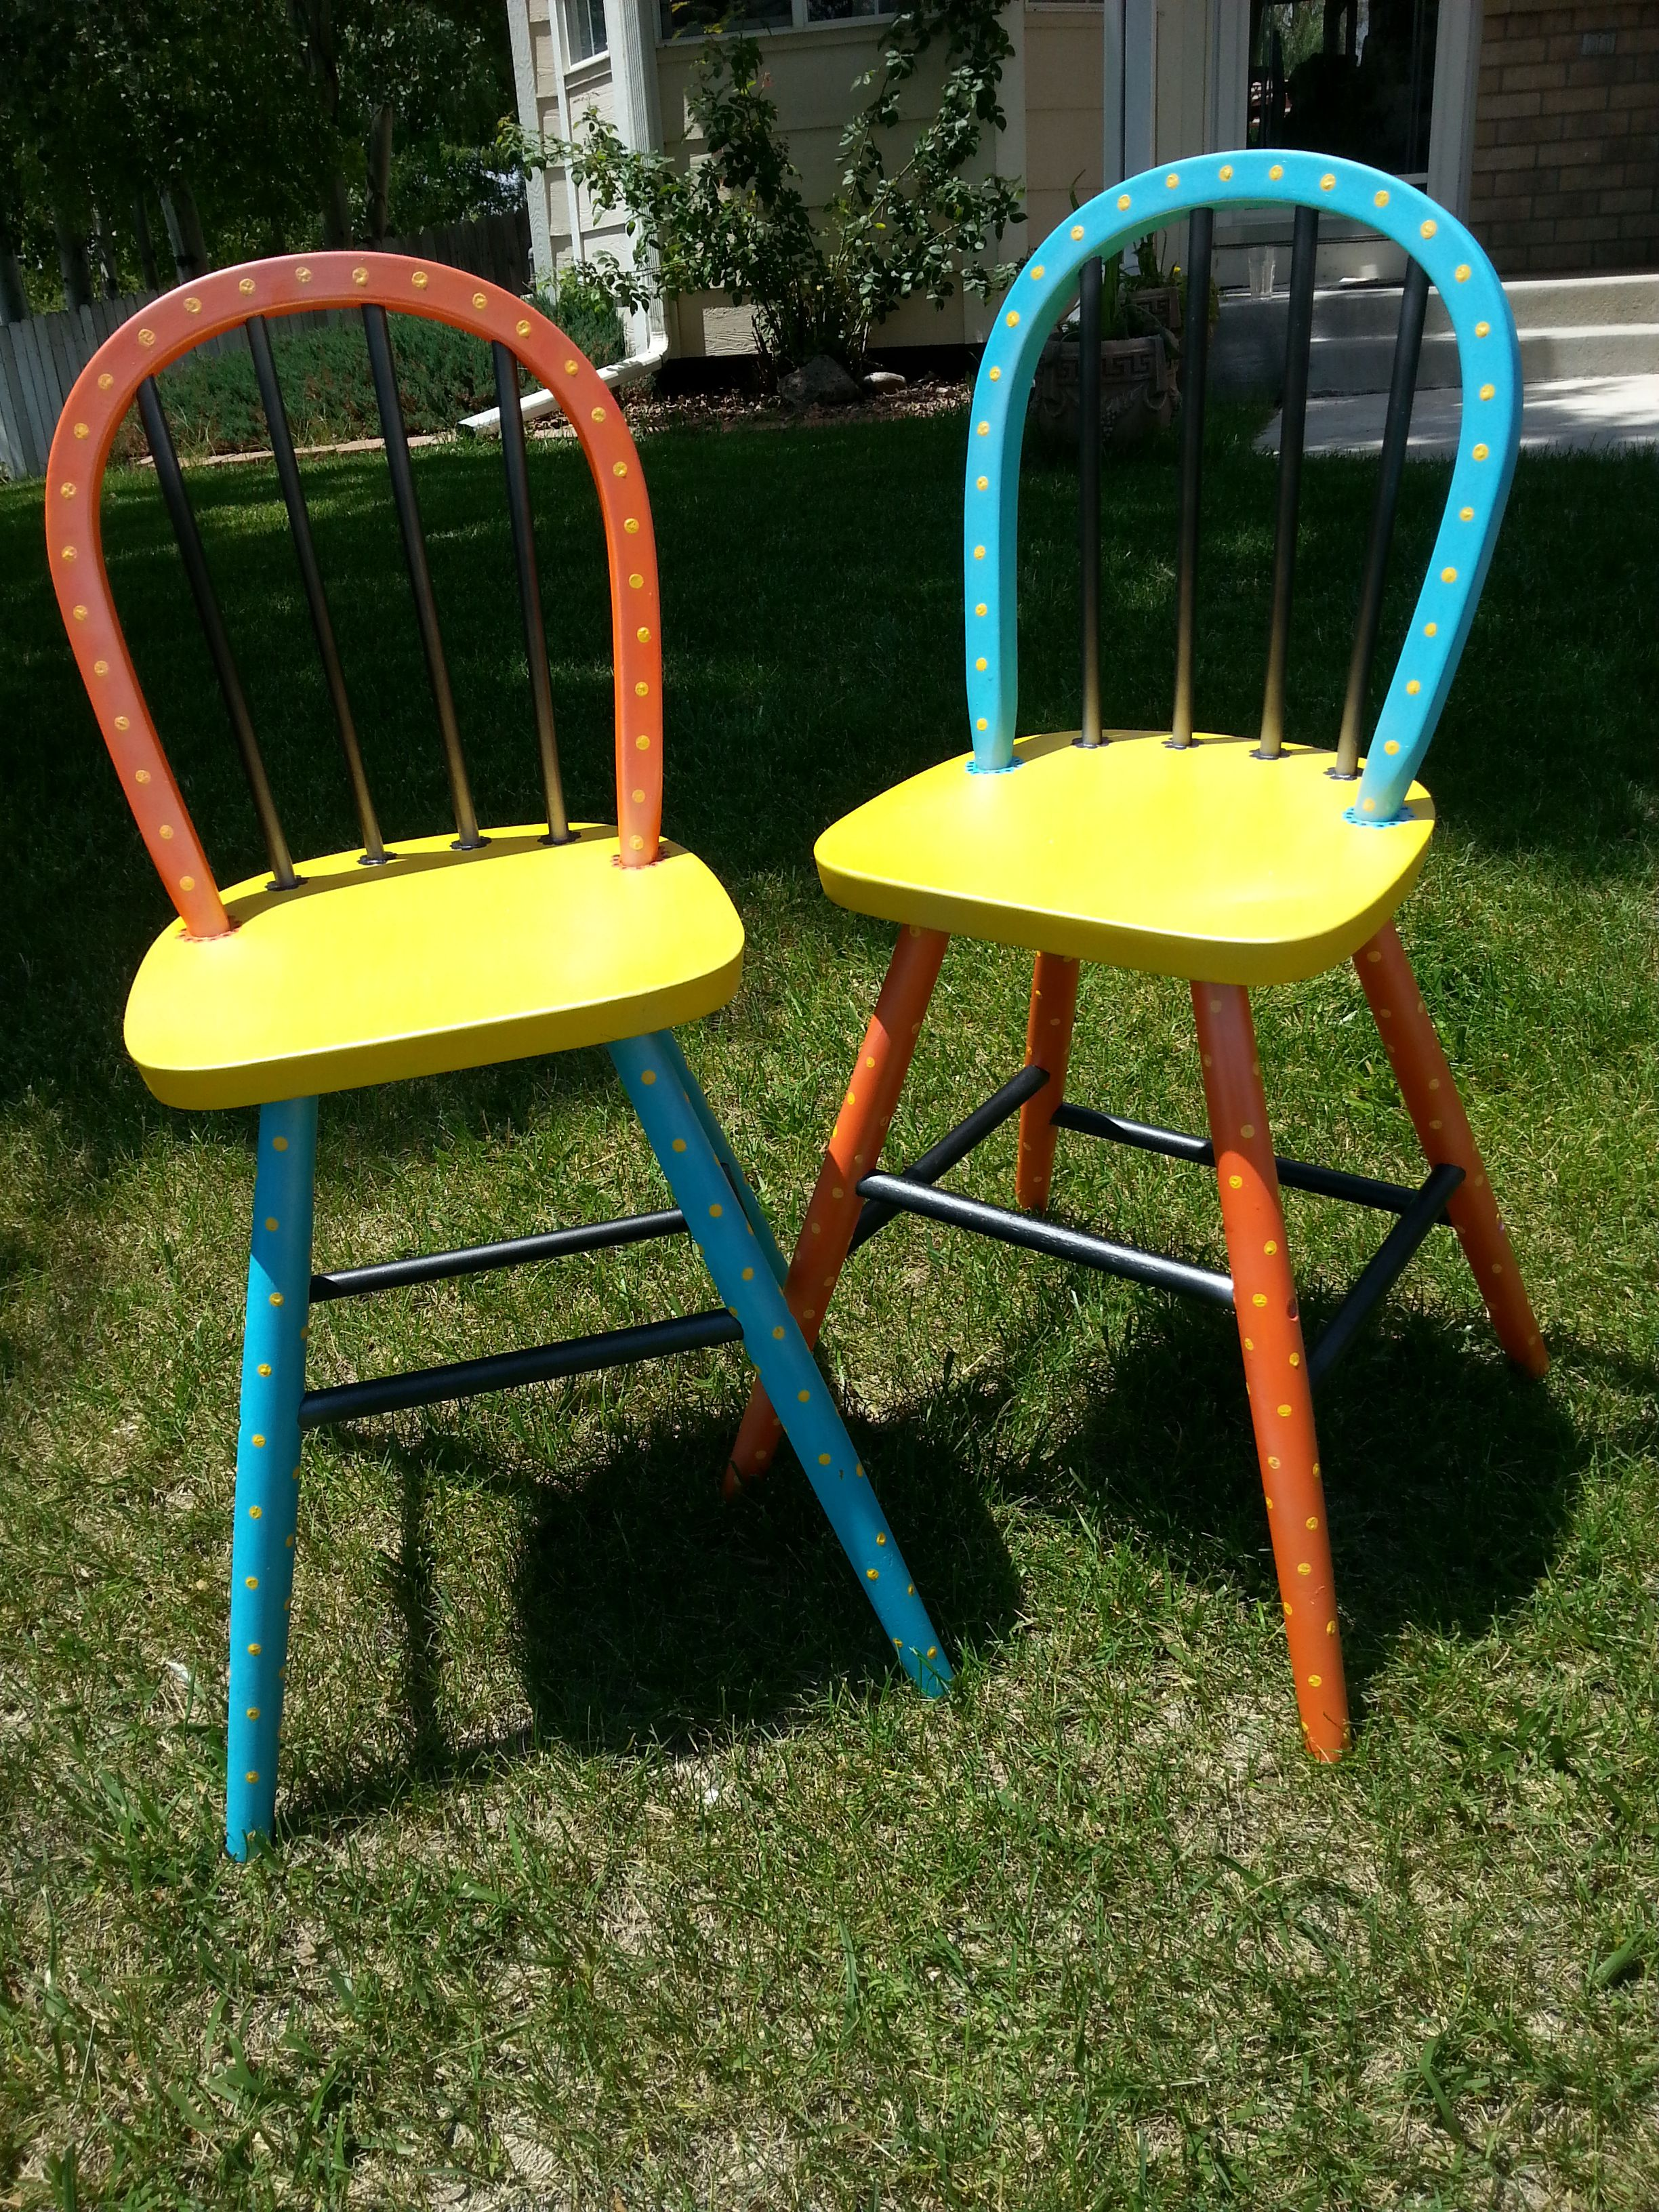 Upcycling some youth chairs with a cool polka dot design Chairs